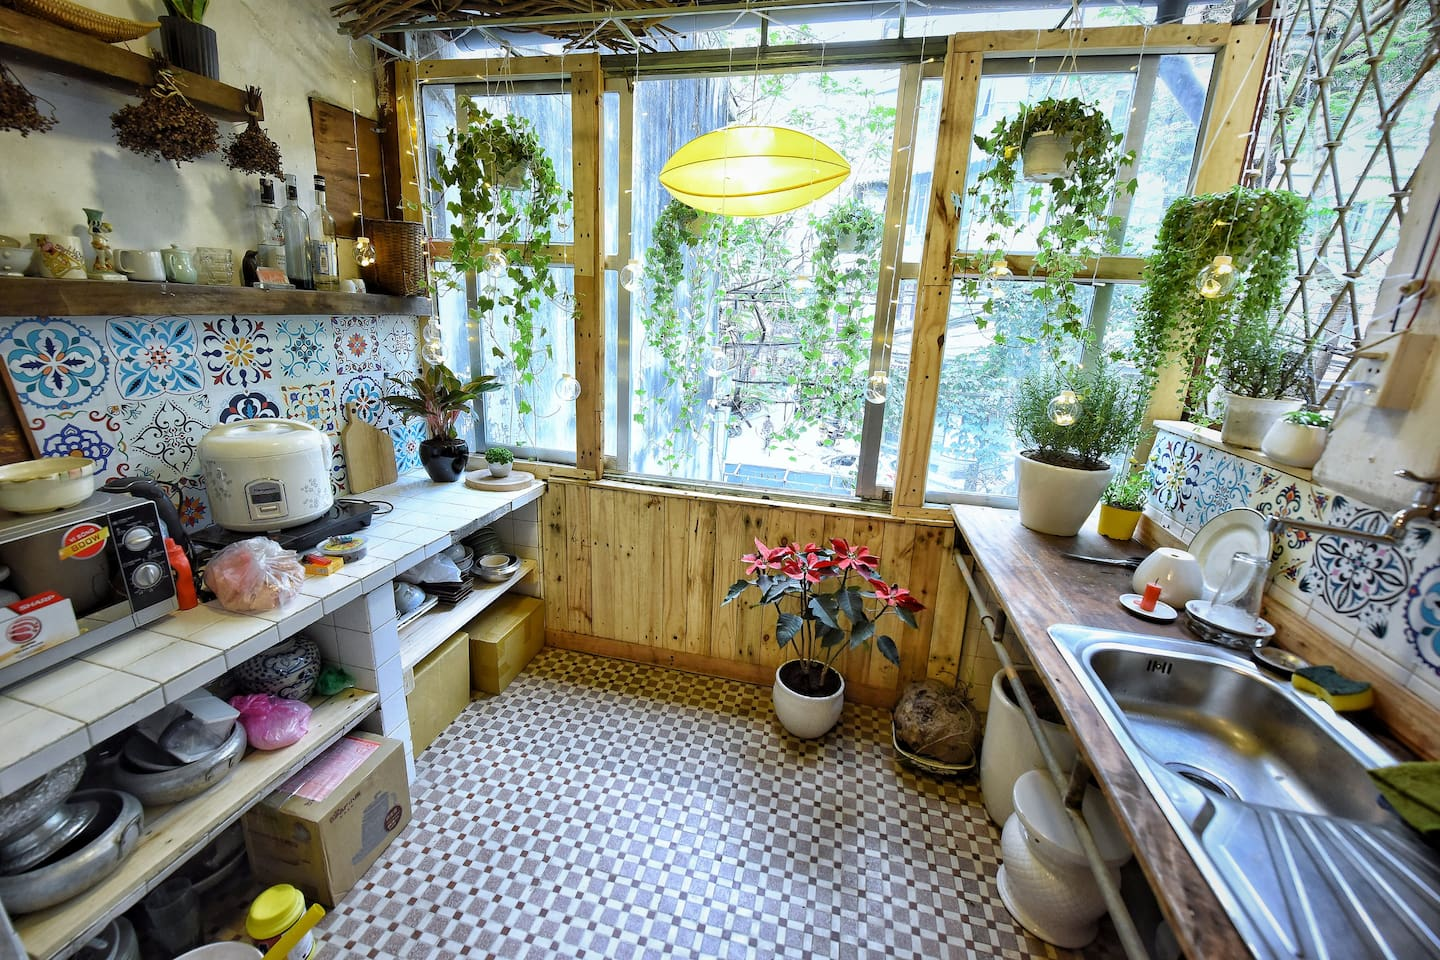 Your cosy kitchen looking out to the Old Quarter. A quite peaceful retreat to stay cool in the hot weather of Hanoi.